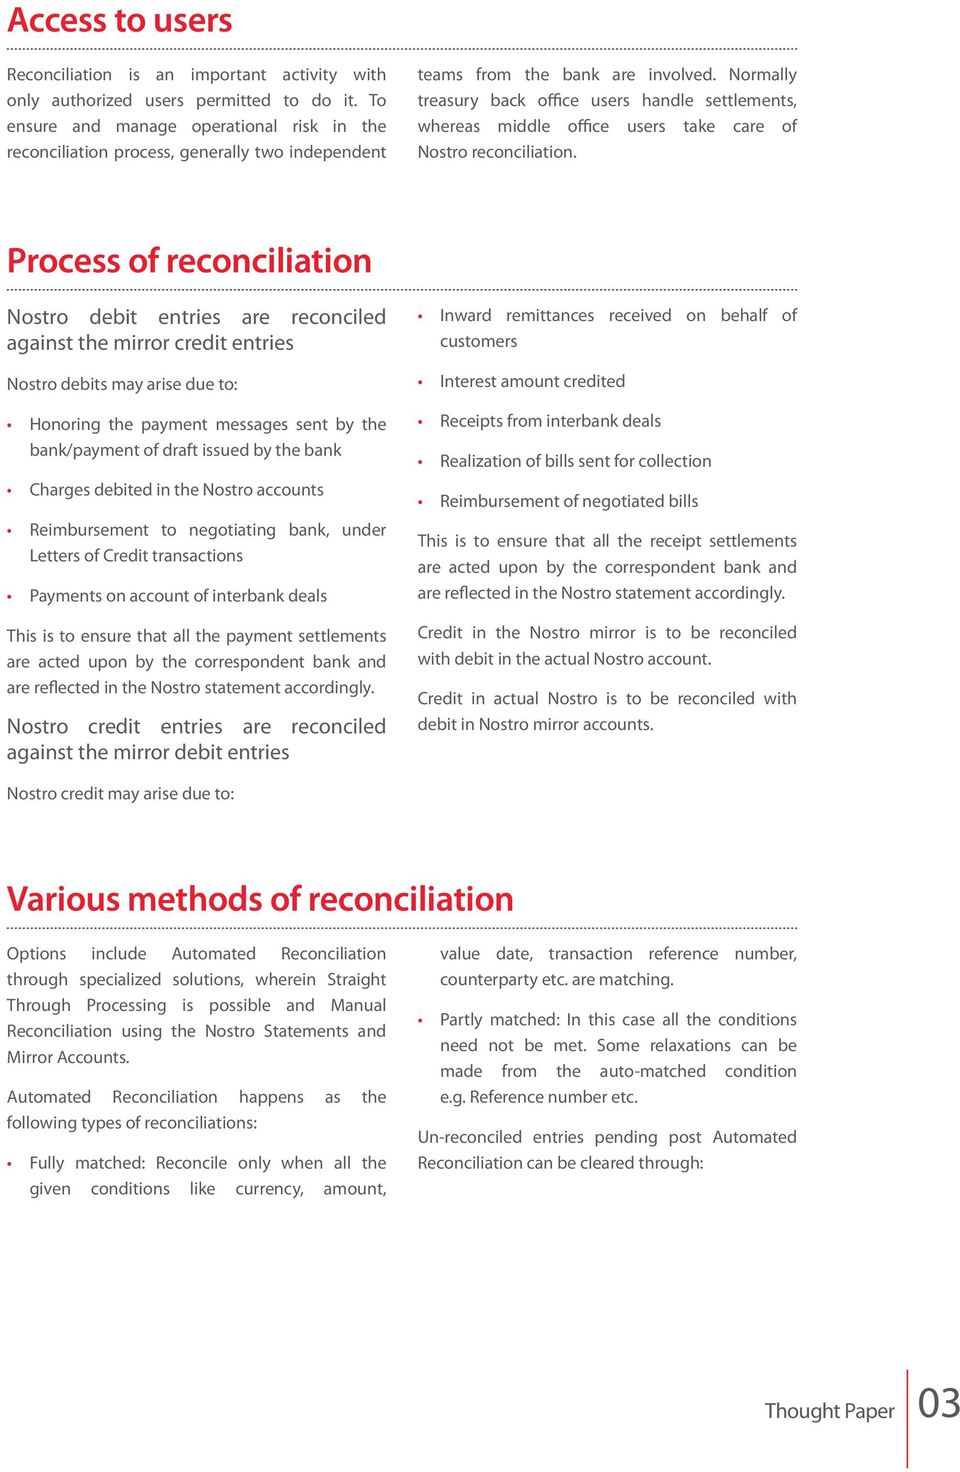 Nostro reconciliation: how it works in a bank - PDF